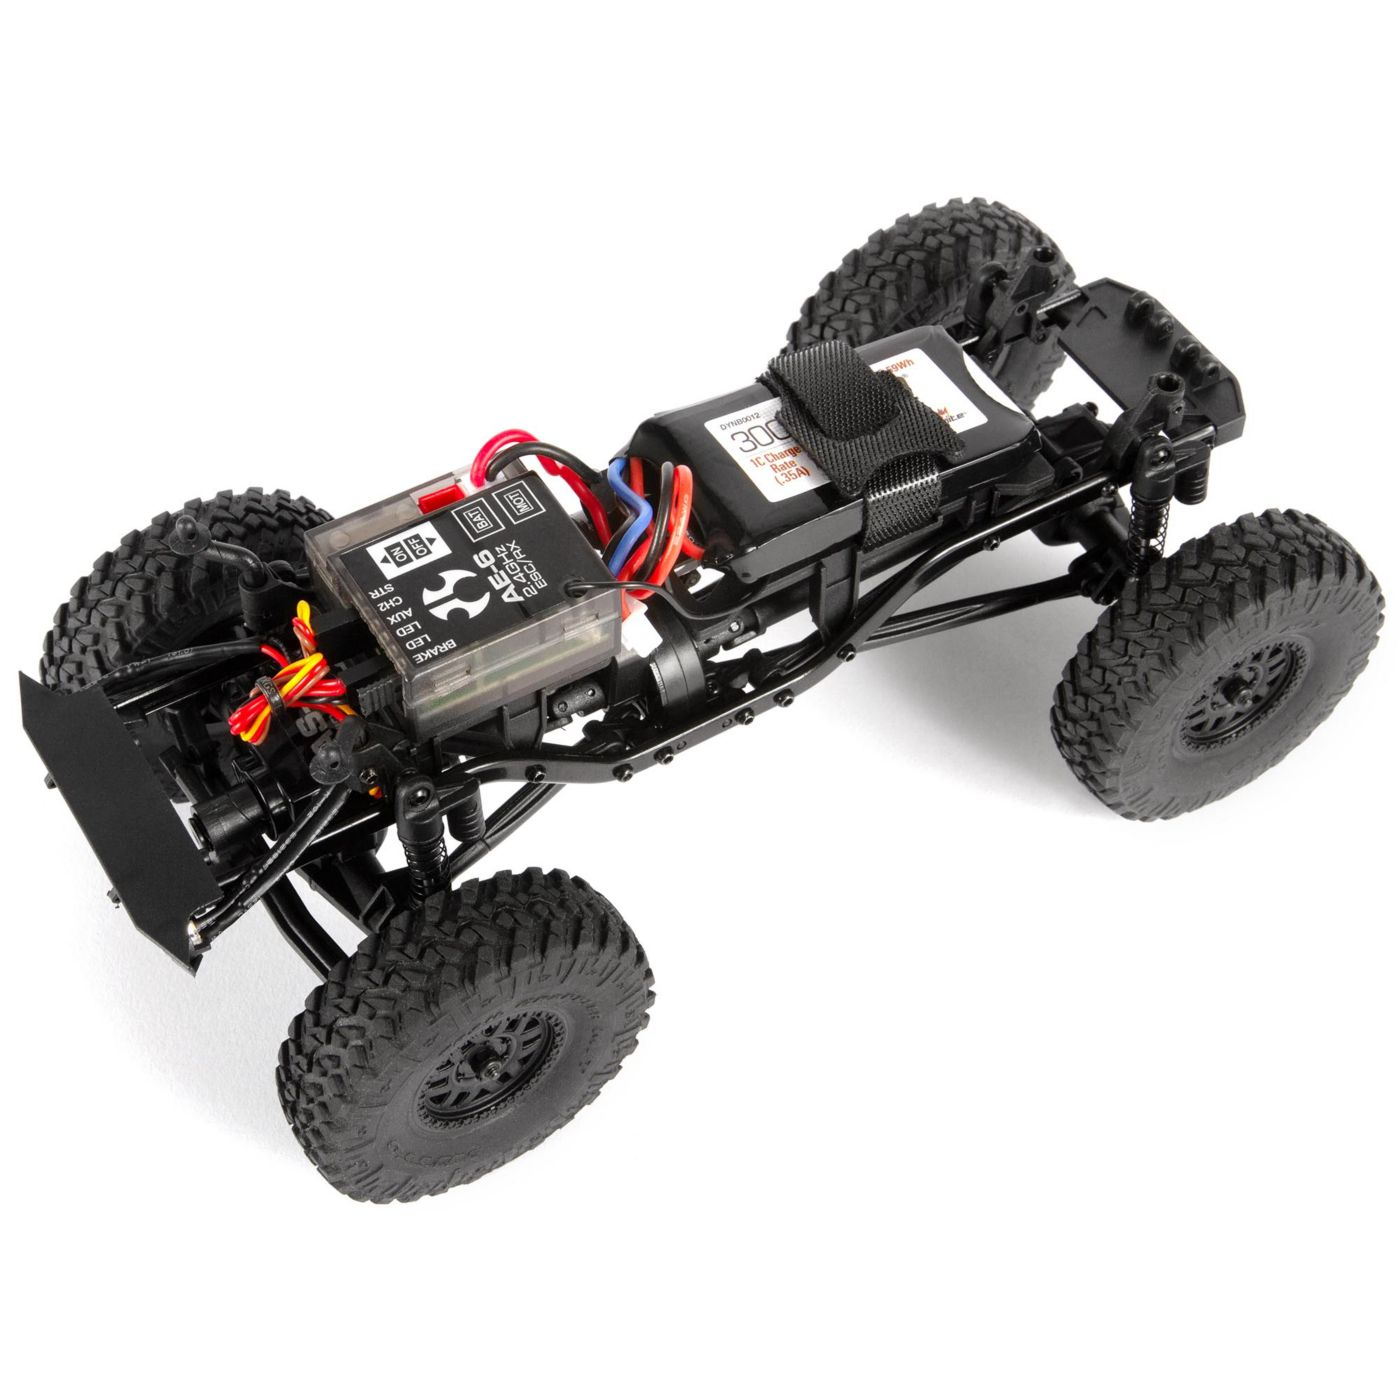 Axial SCX24 Deadbolt - Chassis